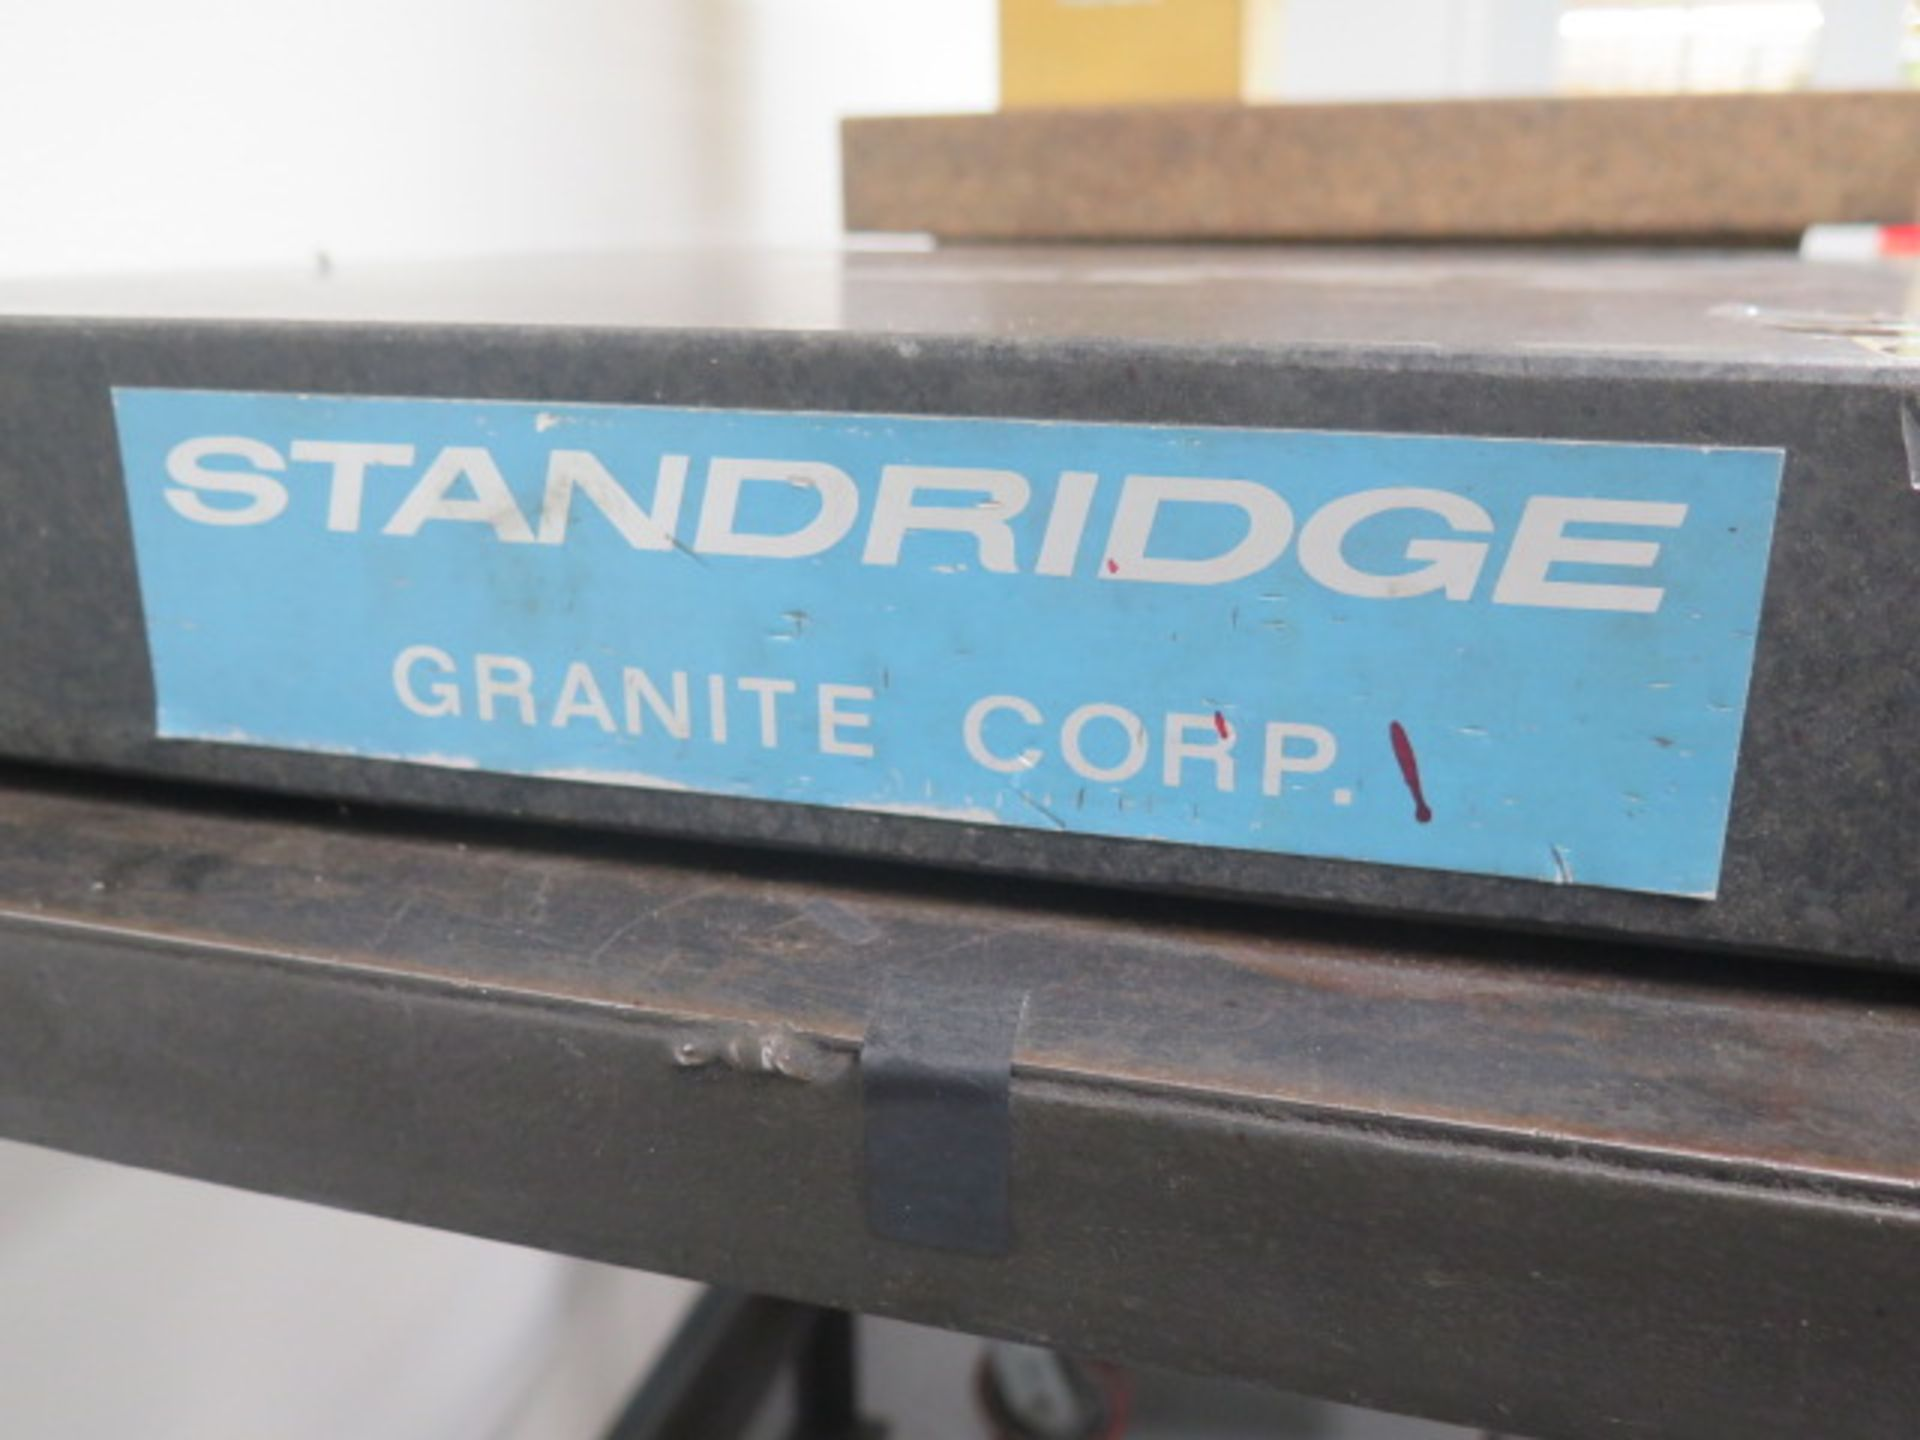 "Standridge 24"" x 24"" x 3"" Granite Surface Plate w/ Roll Stand (SOLD AS-IS - NO WARRANTY) - Image 3 of 4"